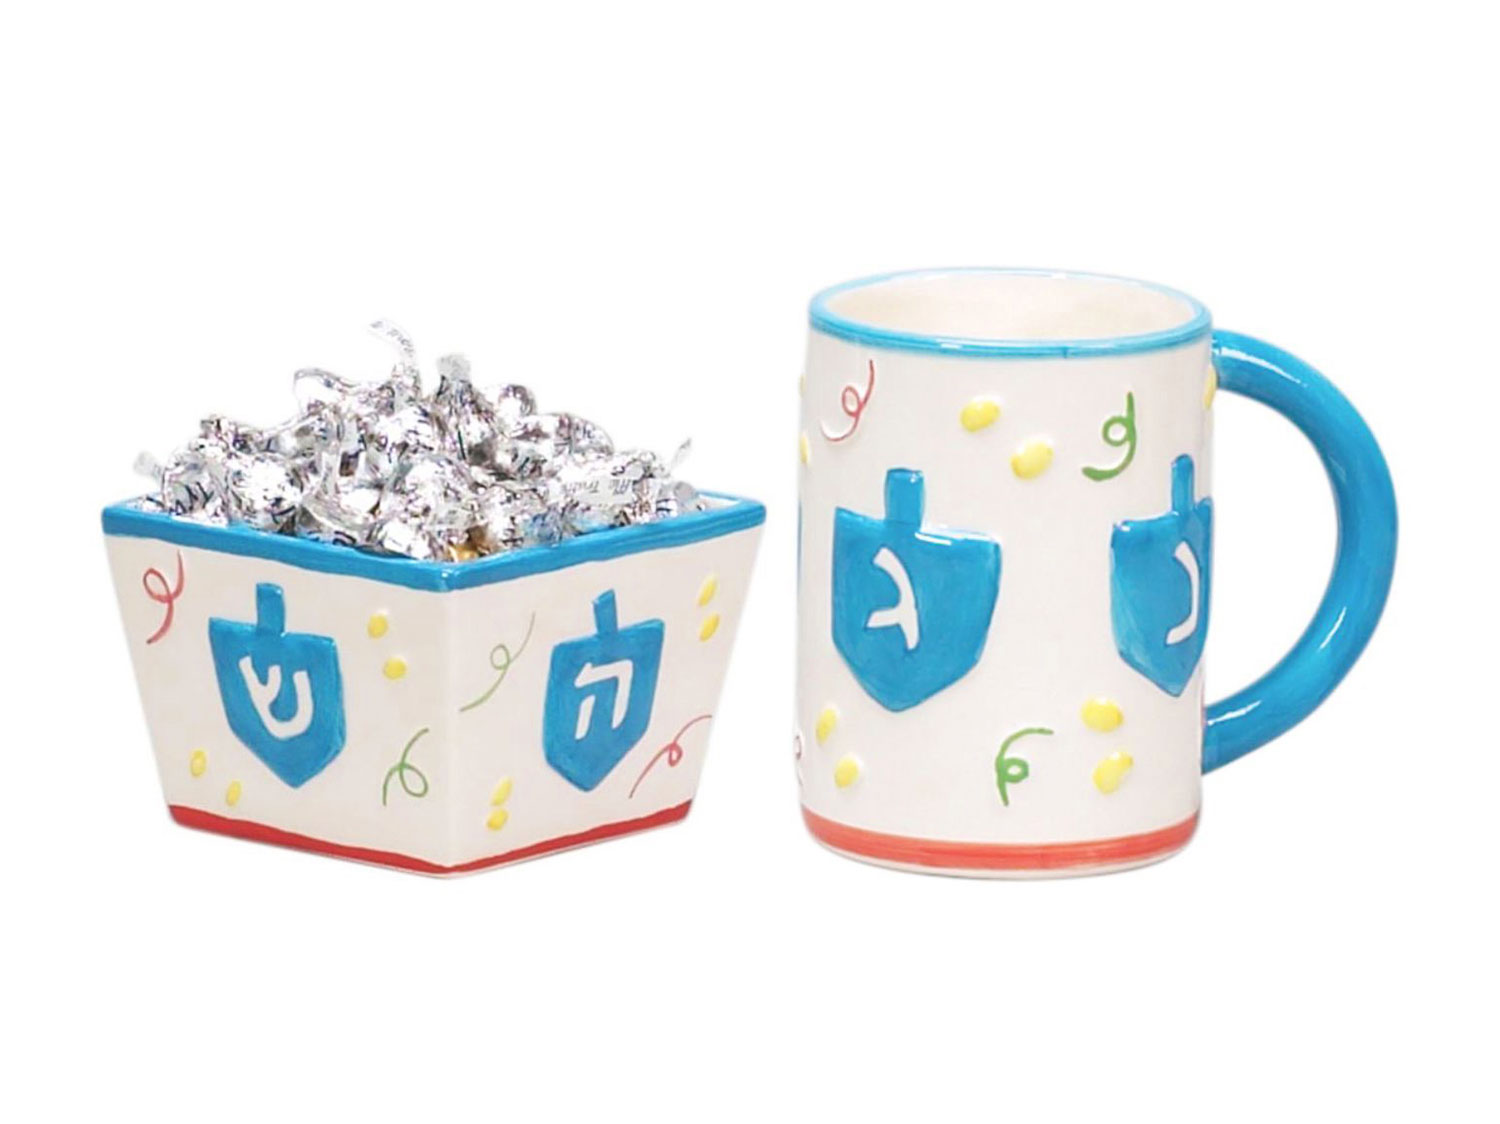 mug and bowl Hanukkah